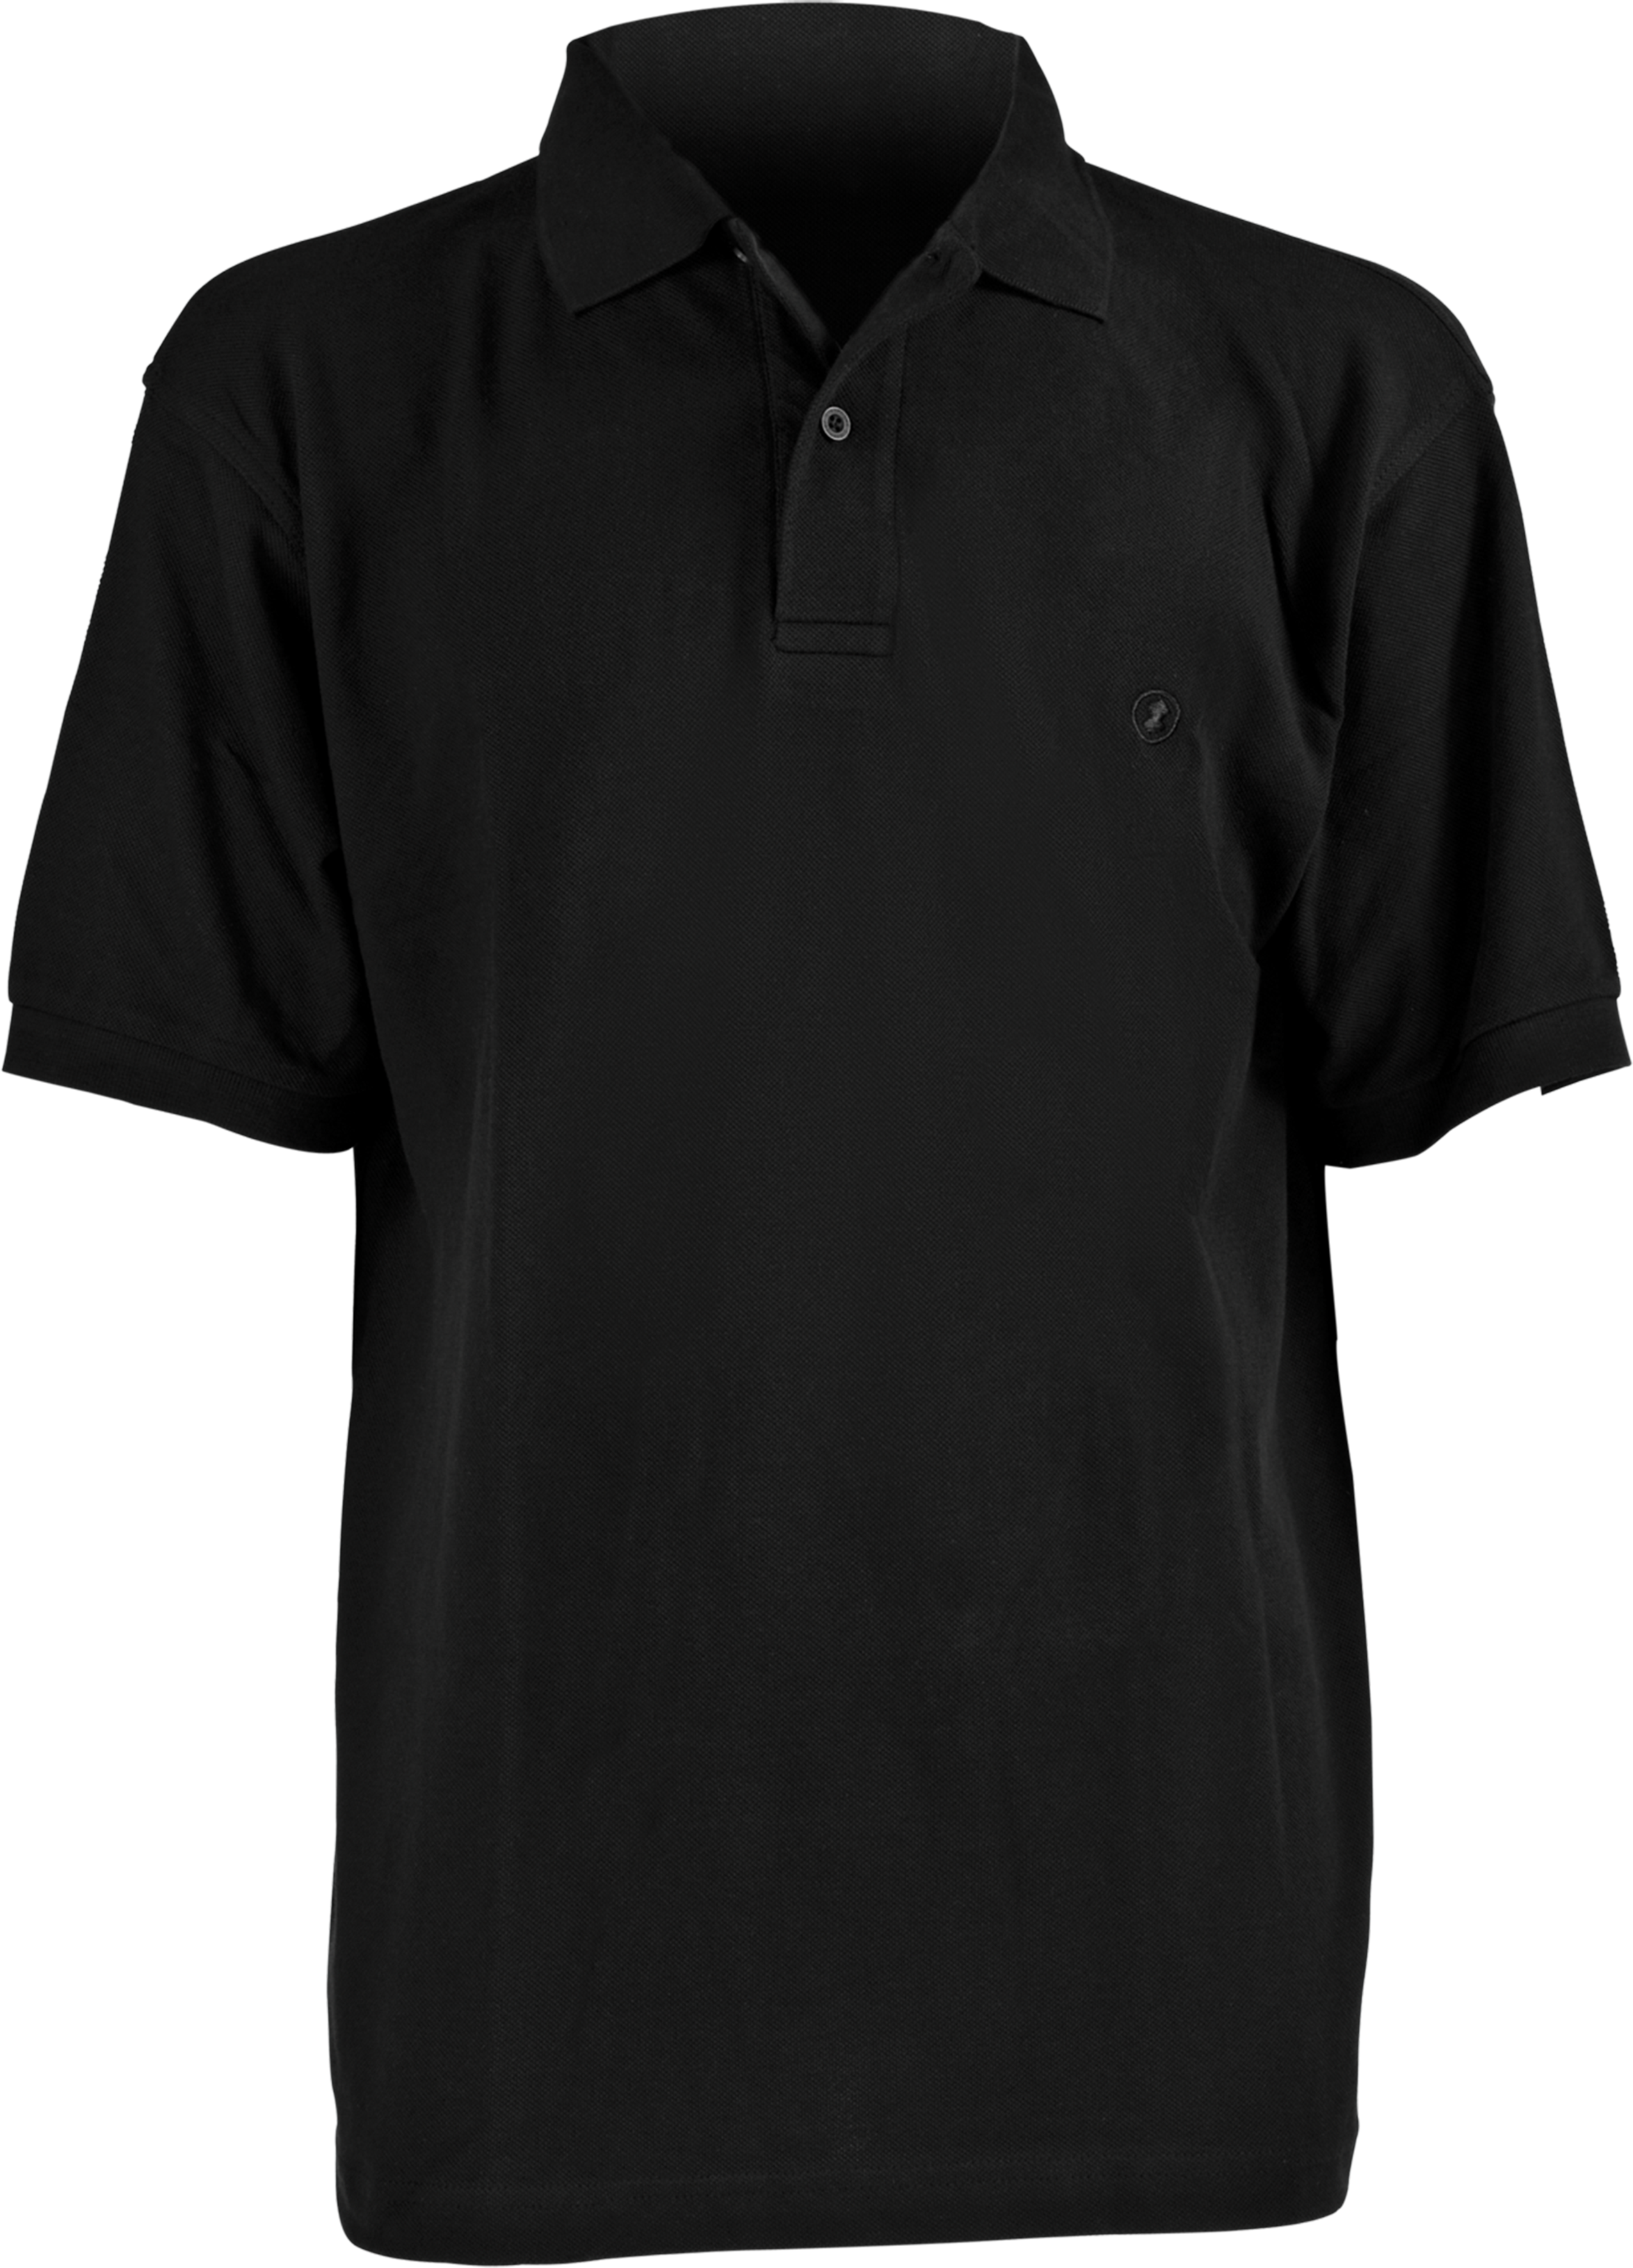 B/be 012_S_01.png - Polo Shirt, Transparent background PNG HD thumbnail